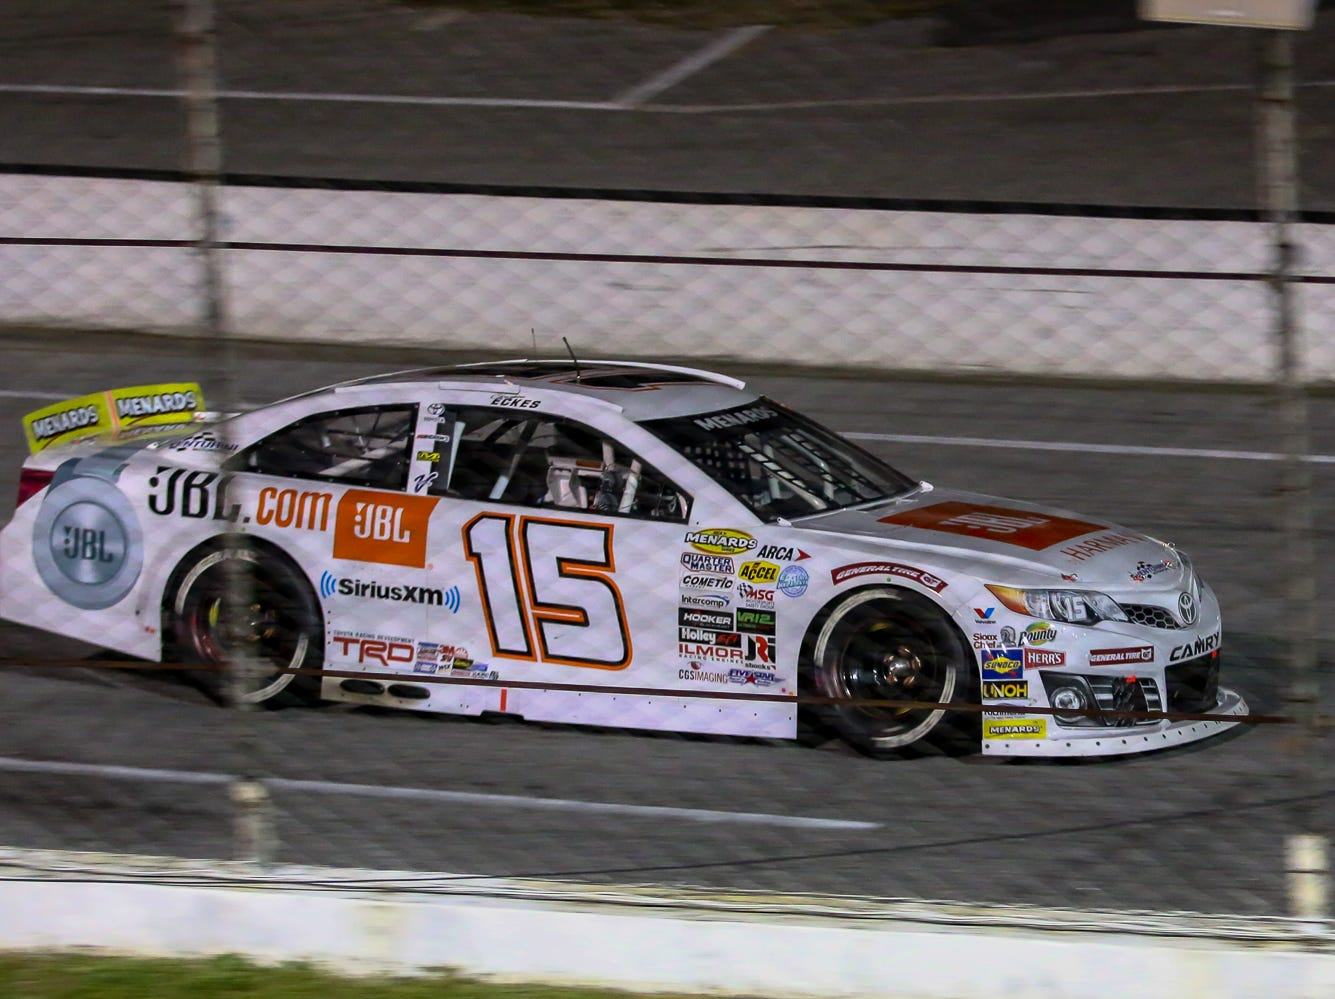 Christian Eckes (15) speeds past the grandstands during the ARCA Pensacola 200 race presented by Inspectra Thermal Solutions on Saturday, March 9, 2019, at Five Flags Speedway. Michael Self, of Salt Lake City, won the race.